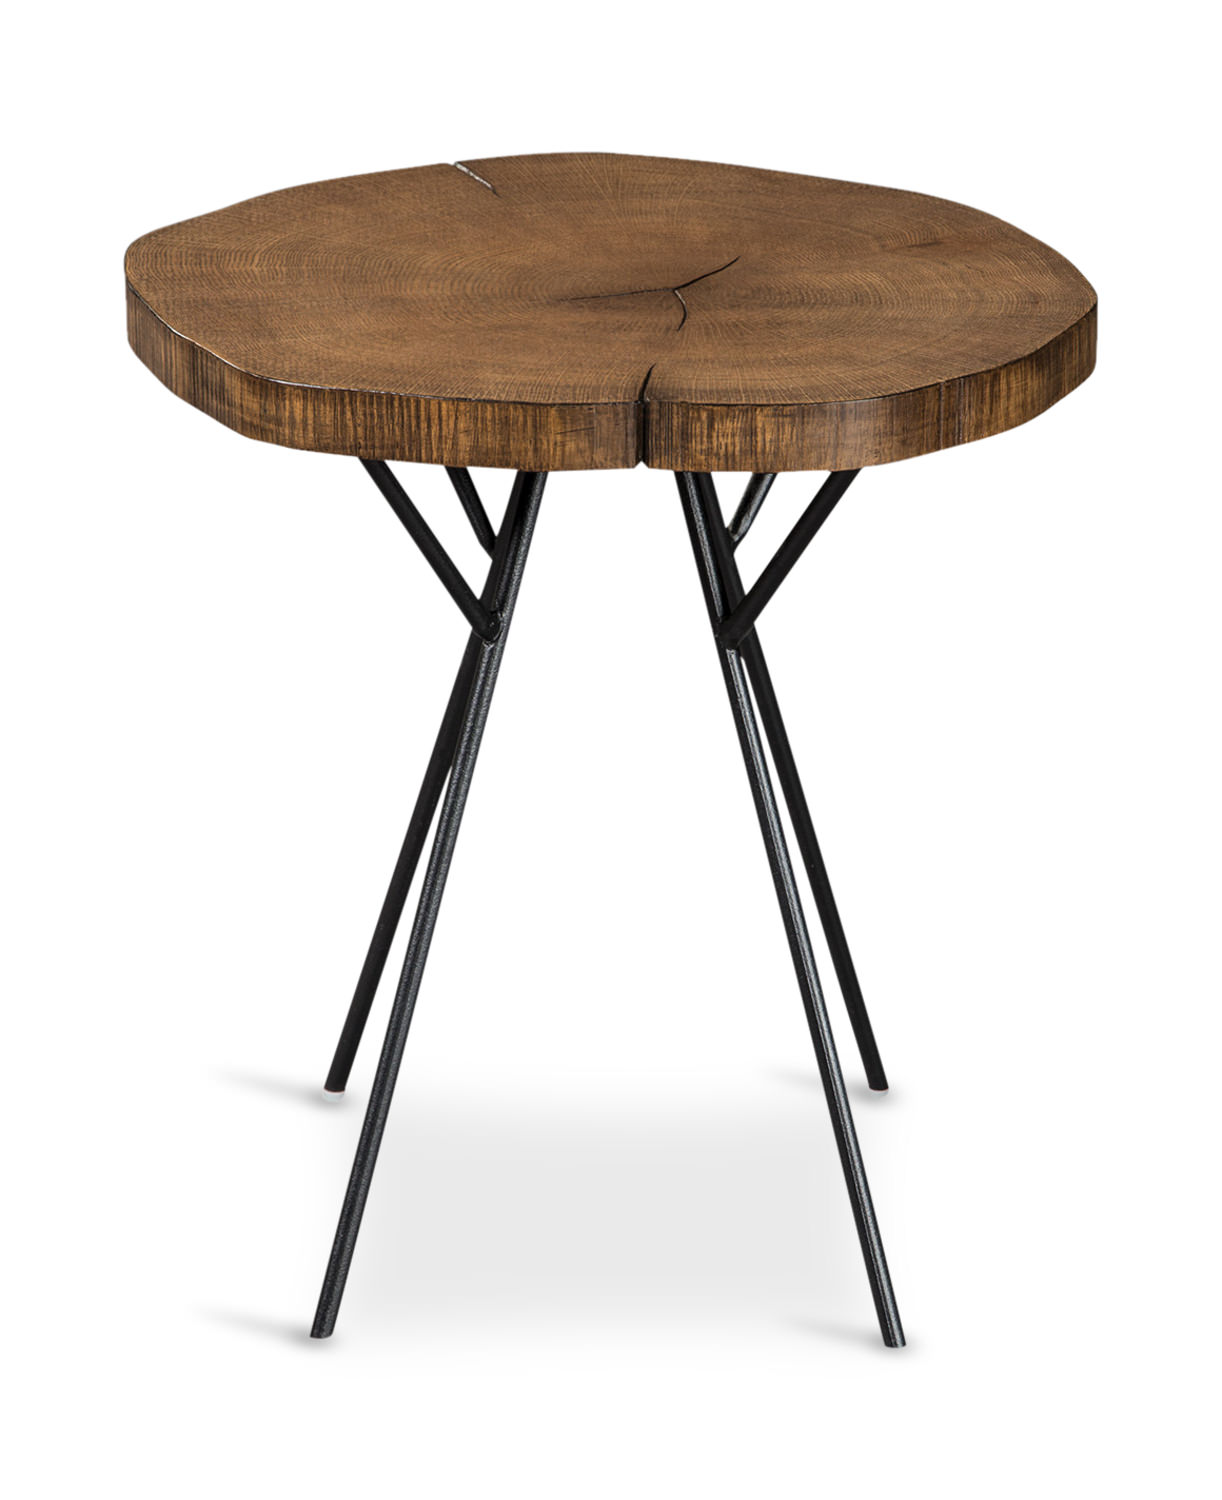 live edge accent table scott living wood natural glass furniture black and white chair homemade runners urn lamp target corner bar stools small occasional tables room gray entry